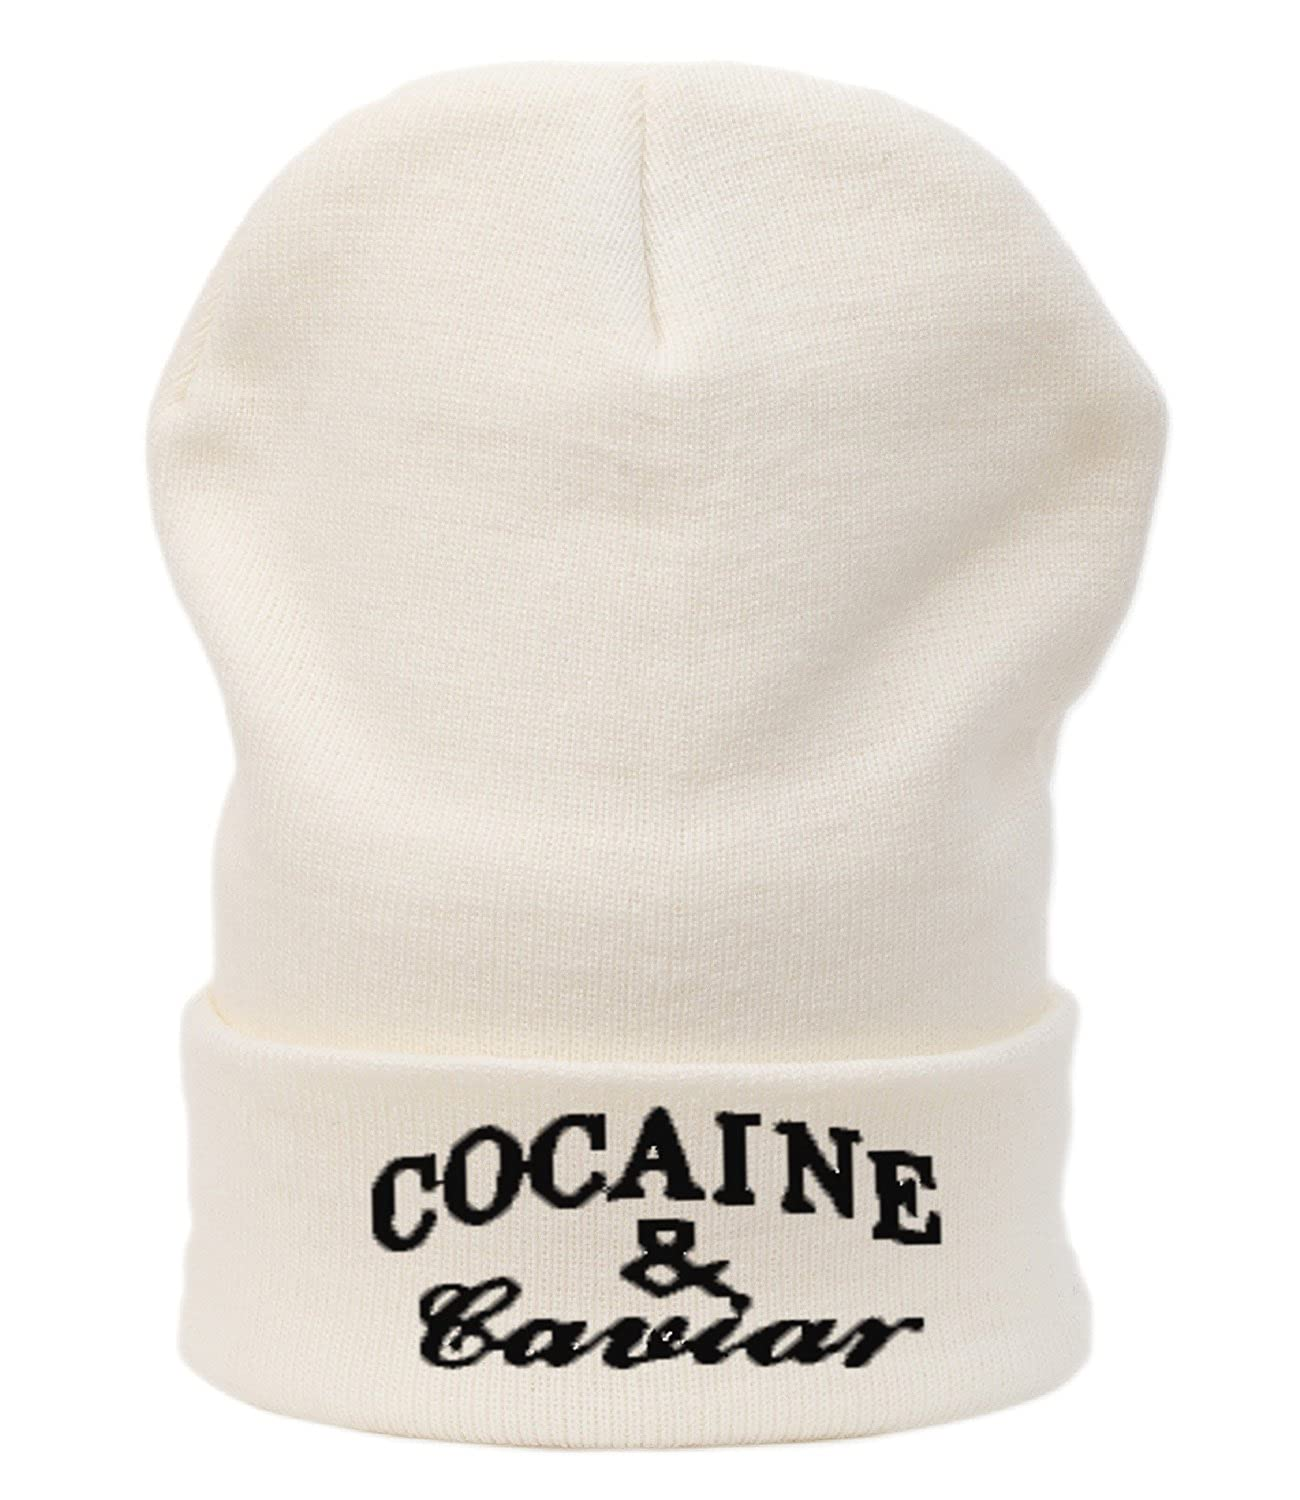 Beanie Mütze Damen Herren Bad Hair Day Cocaine Caviar Meow Swag Wasted DIE Fake meow Commes des 1994 HAT HATS